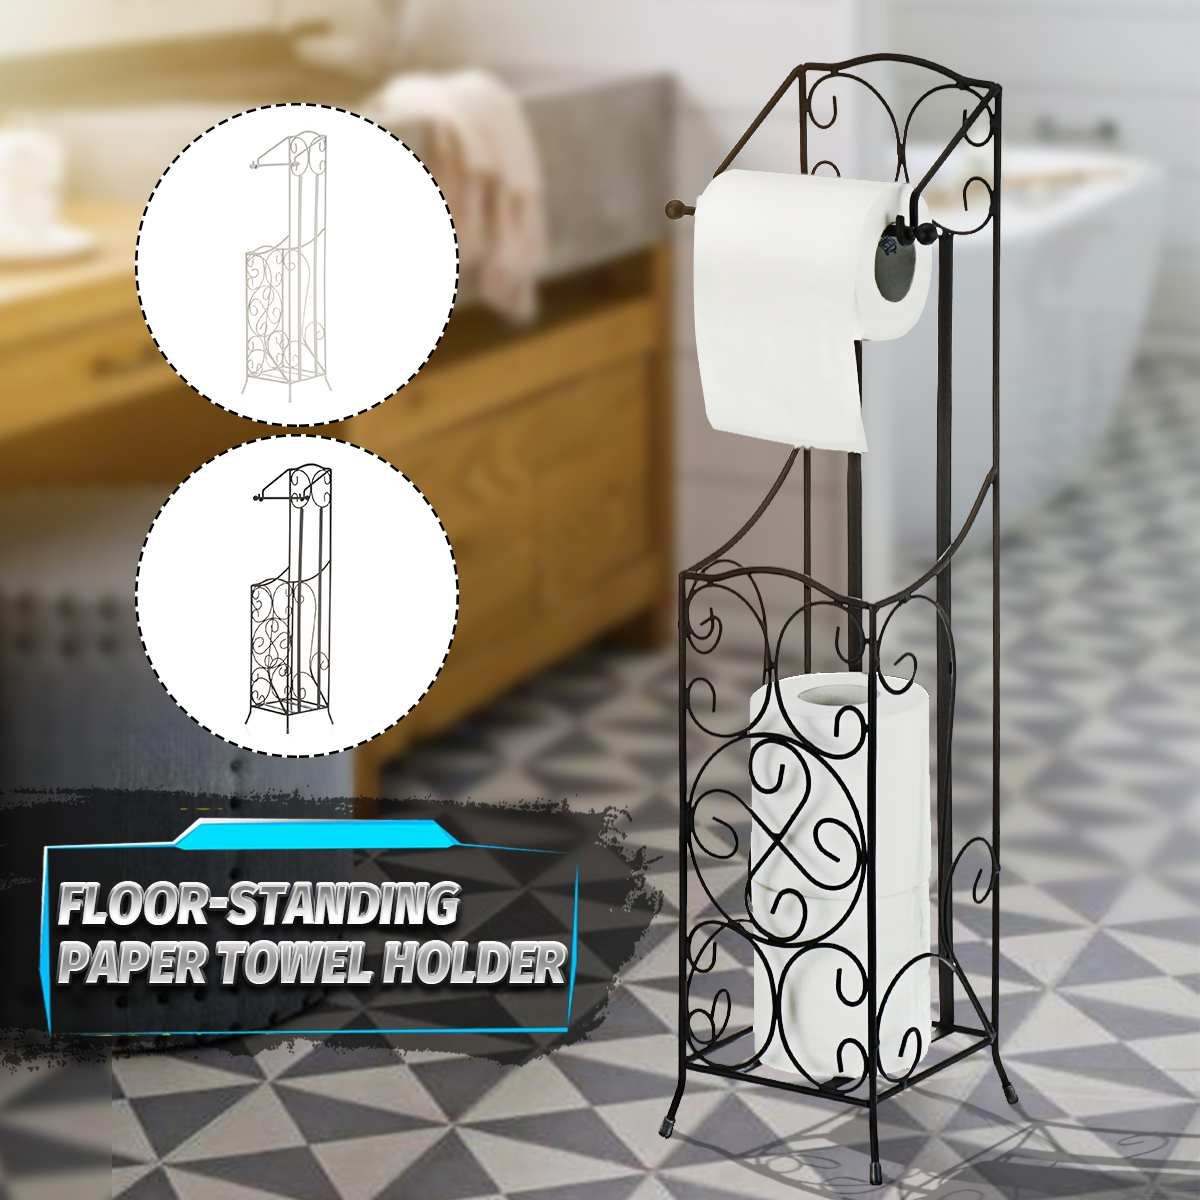 Bathroom Floor Standing Paper Holder